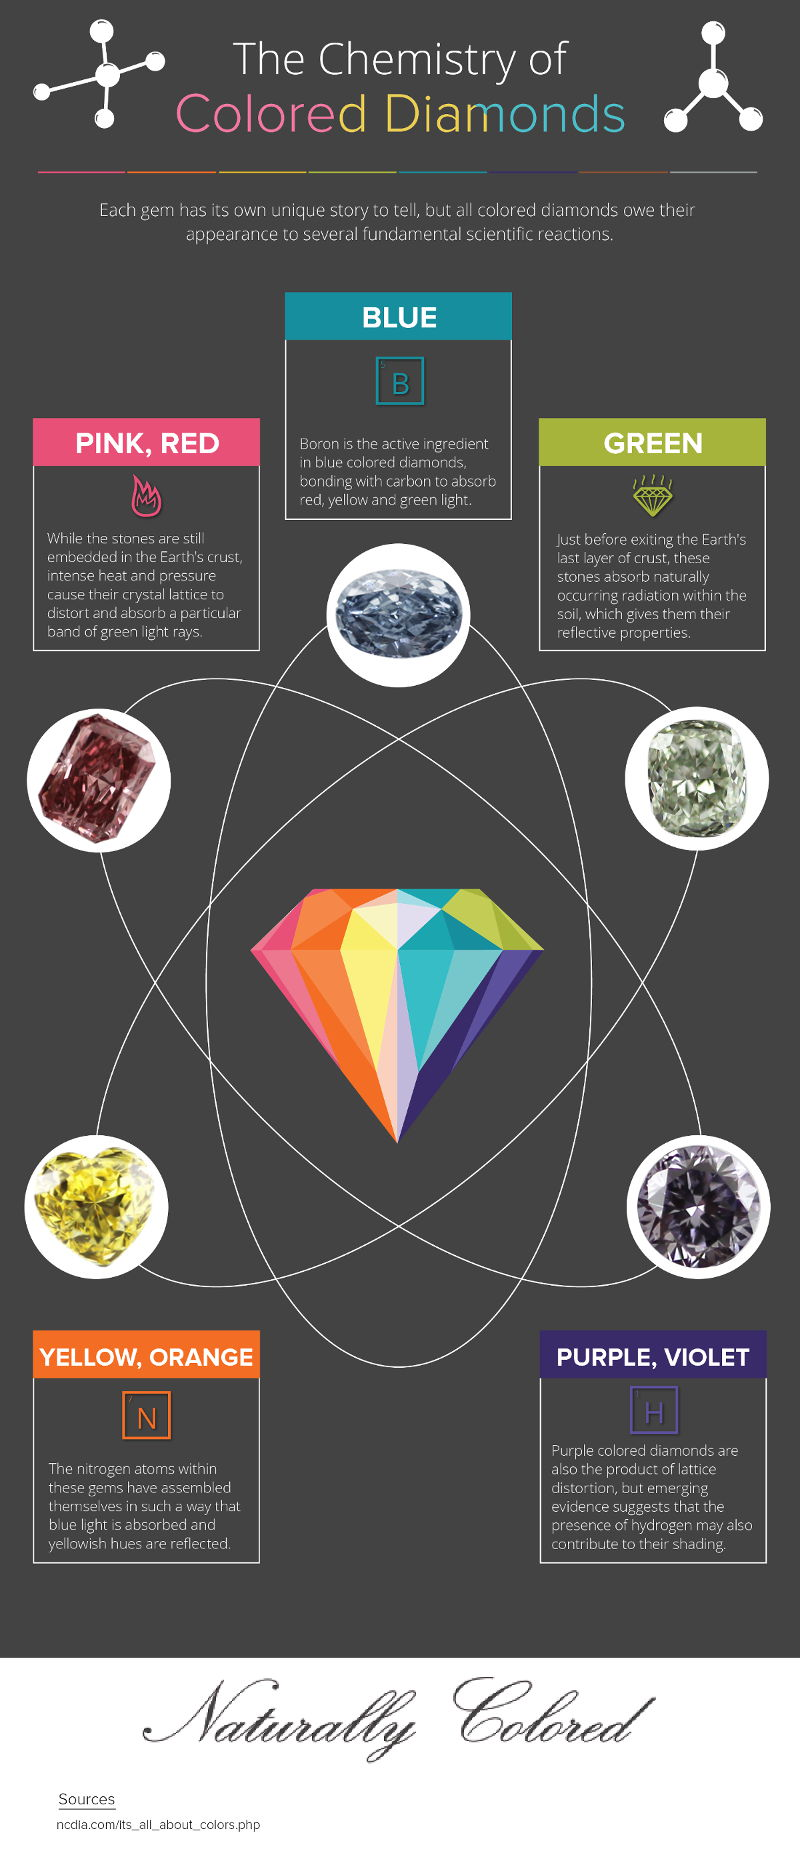 How are Colored Diamonds Made